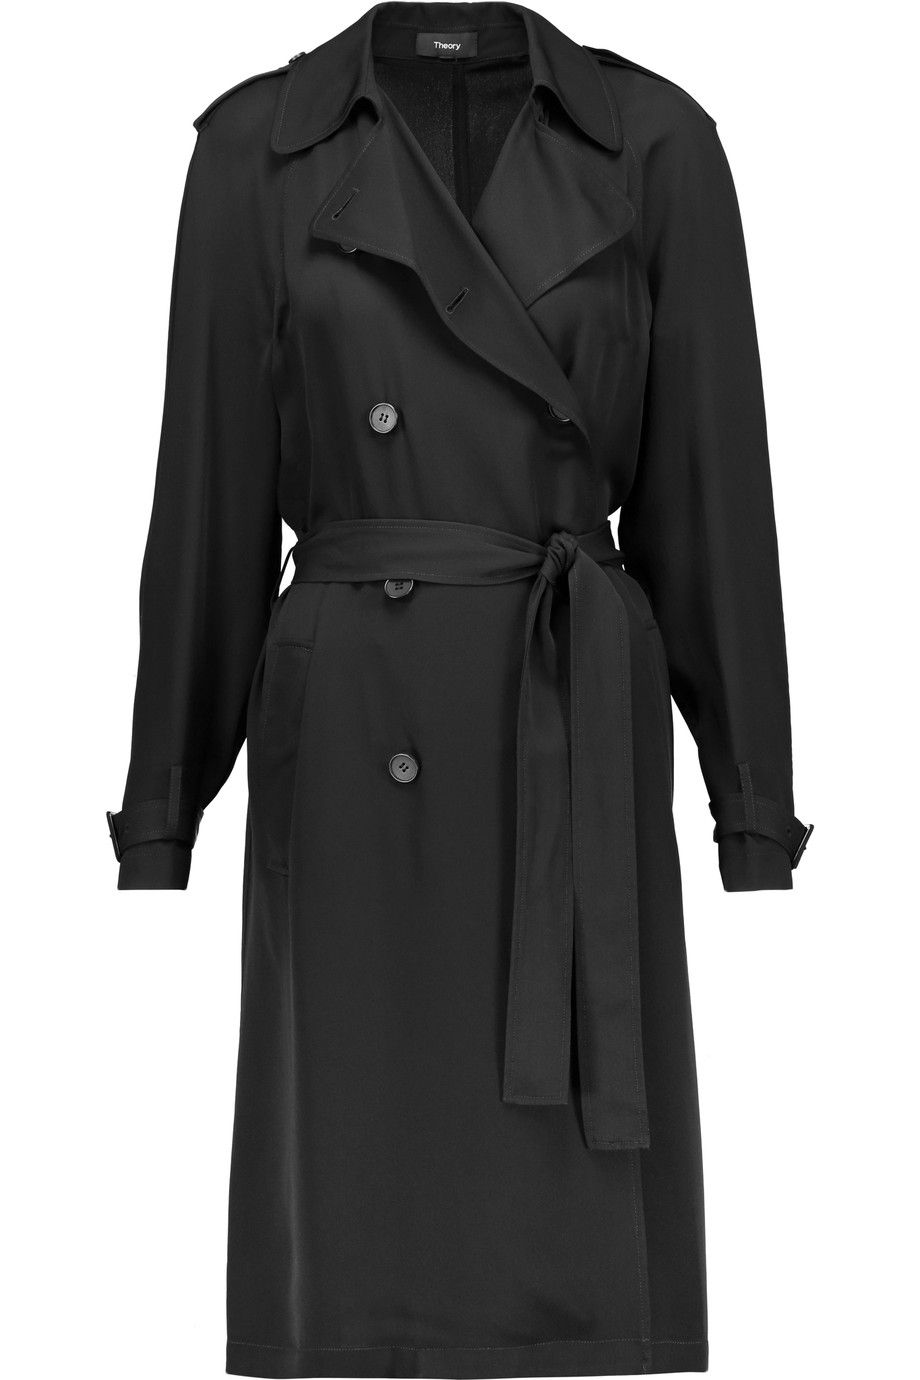 98a622cc80 THEORY Laurelwood silk crepe de chine trench coat. #theory #cloth #coat